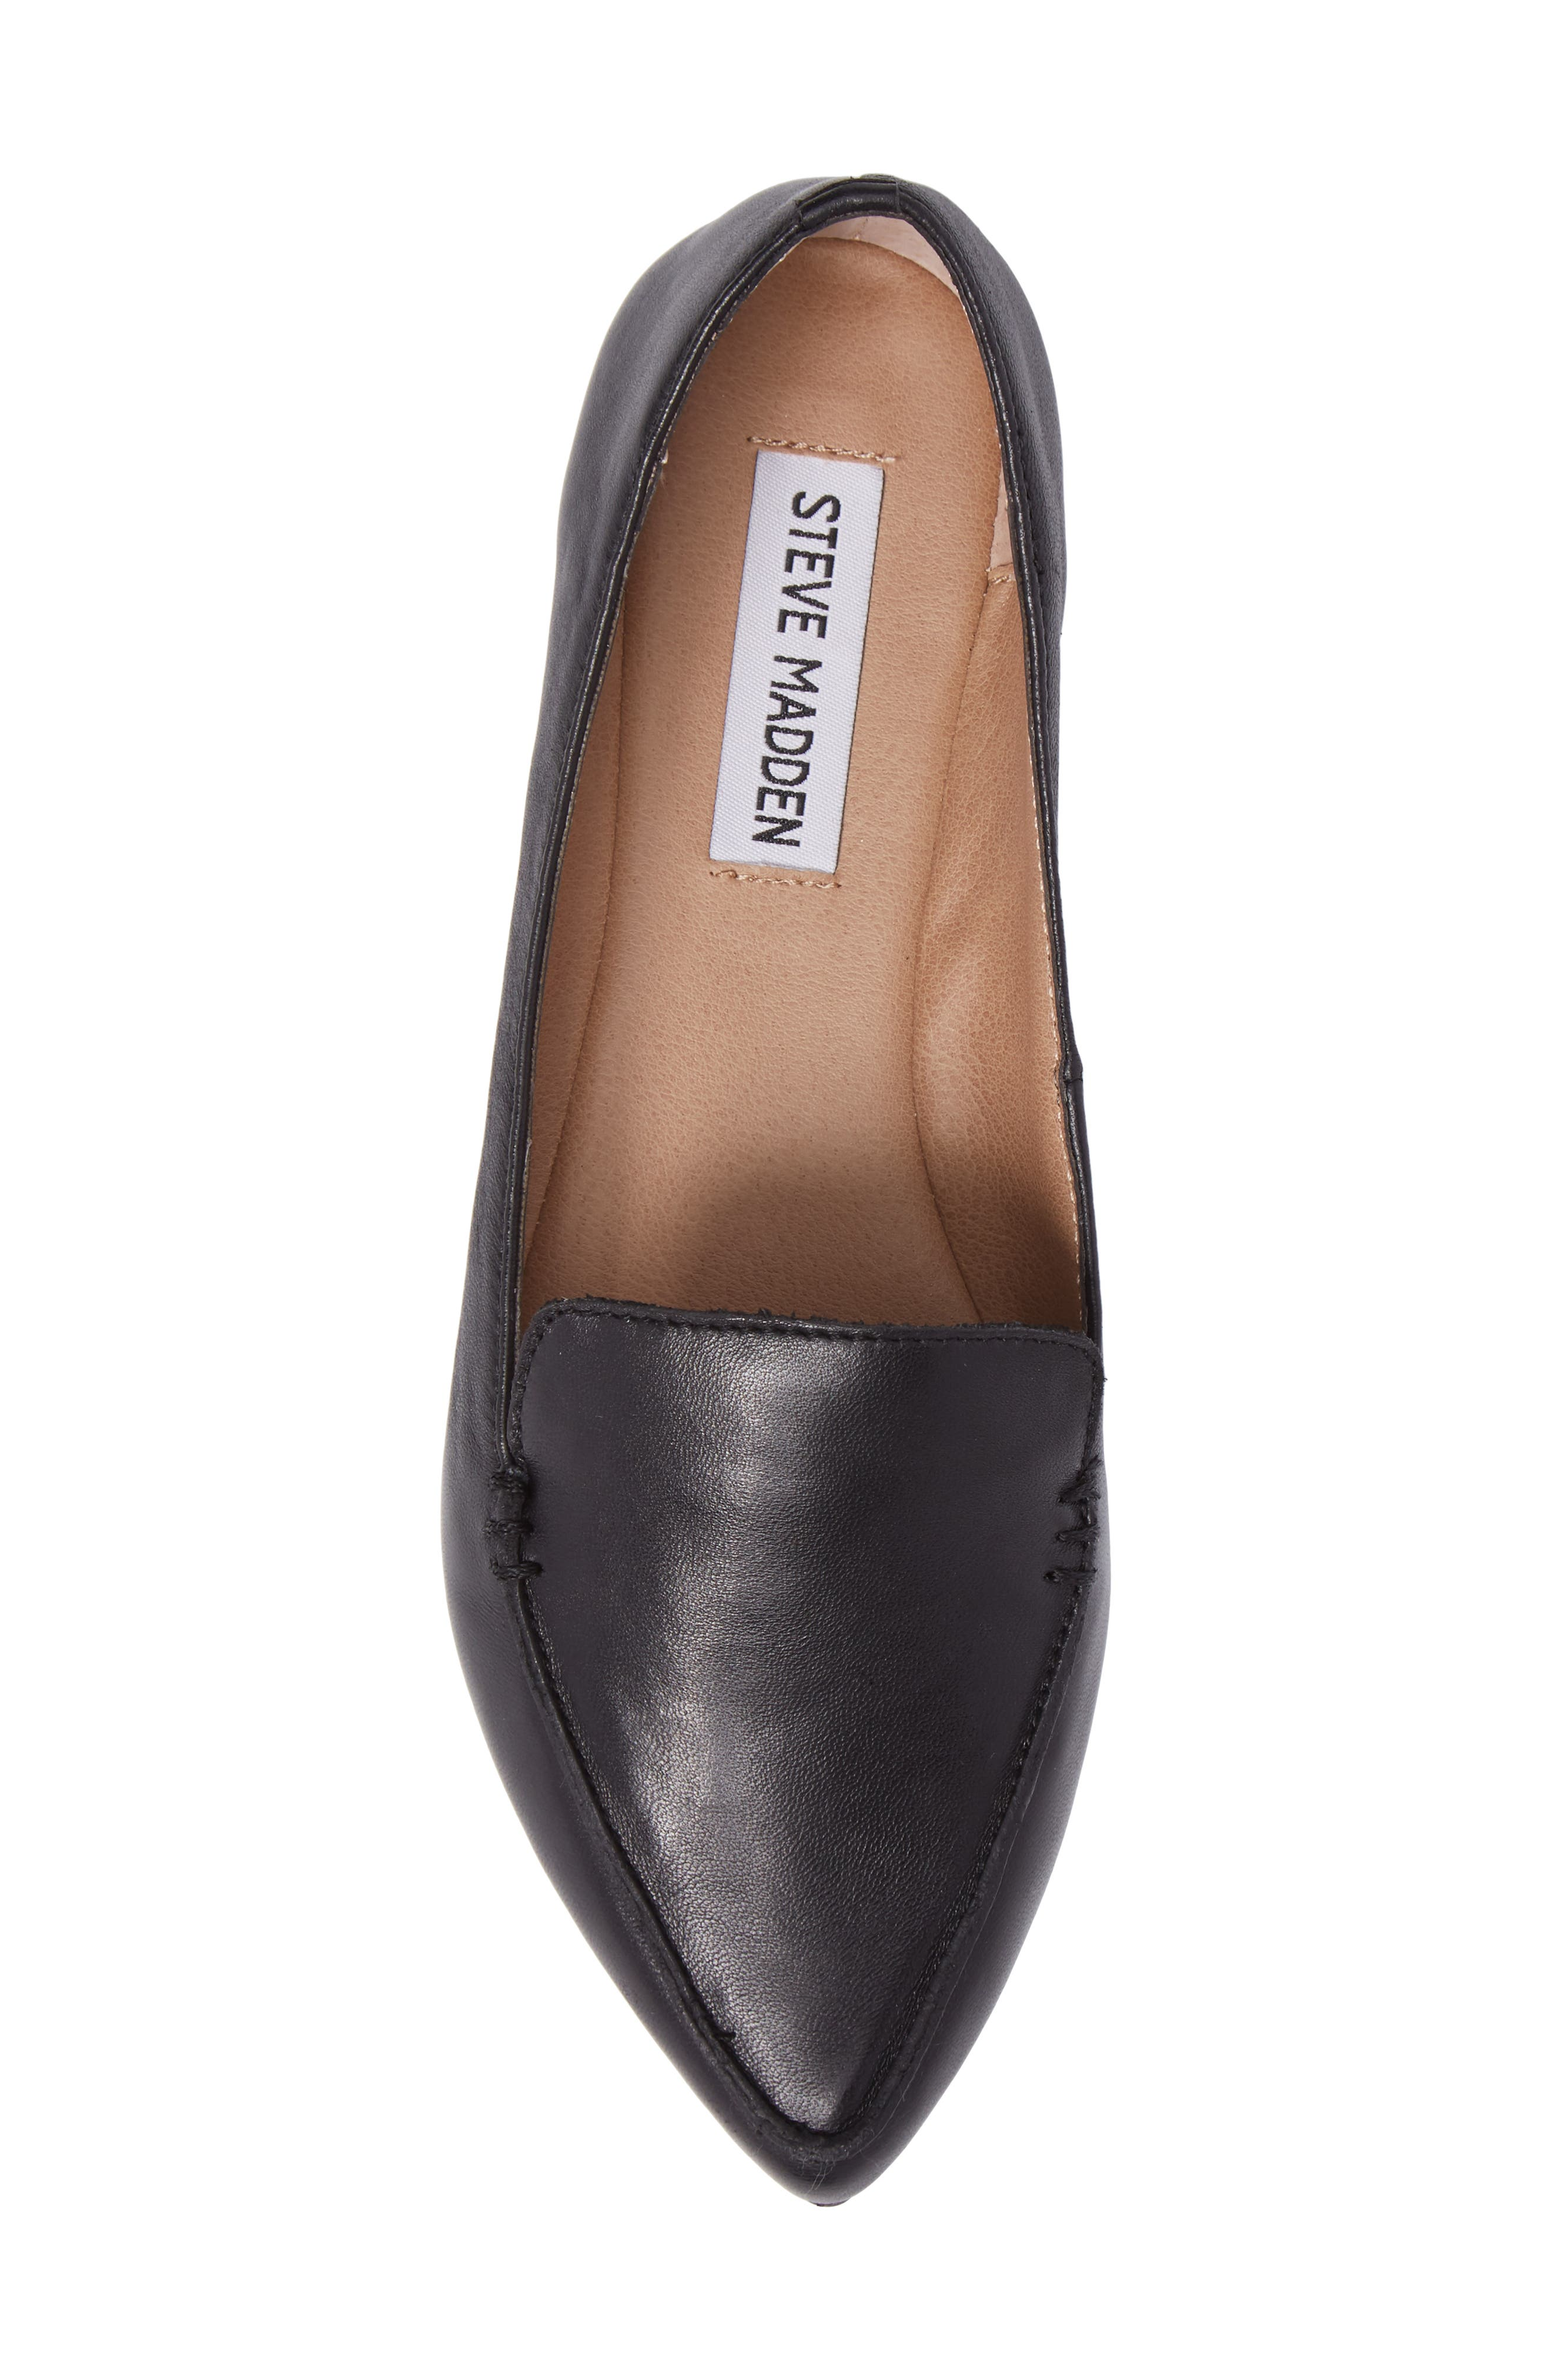 Feather Loafer Flat,                             Alternate thumbnail 5, color,                             Black Leather